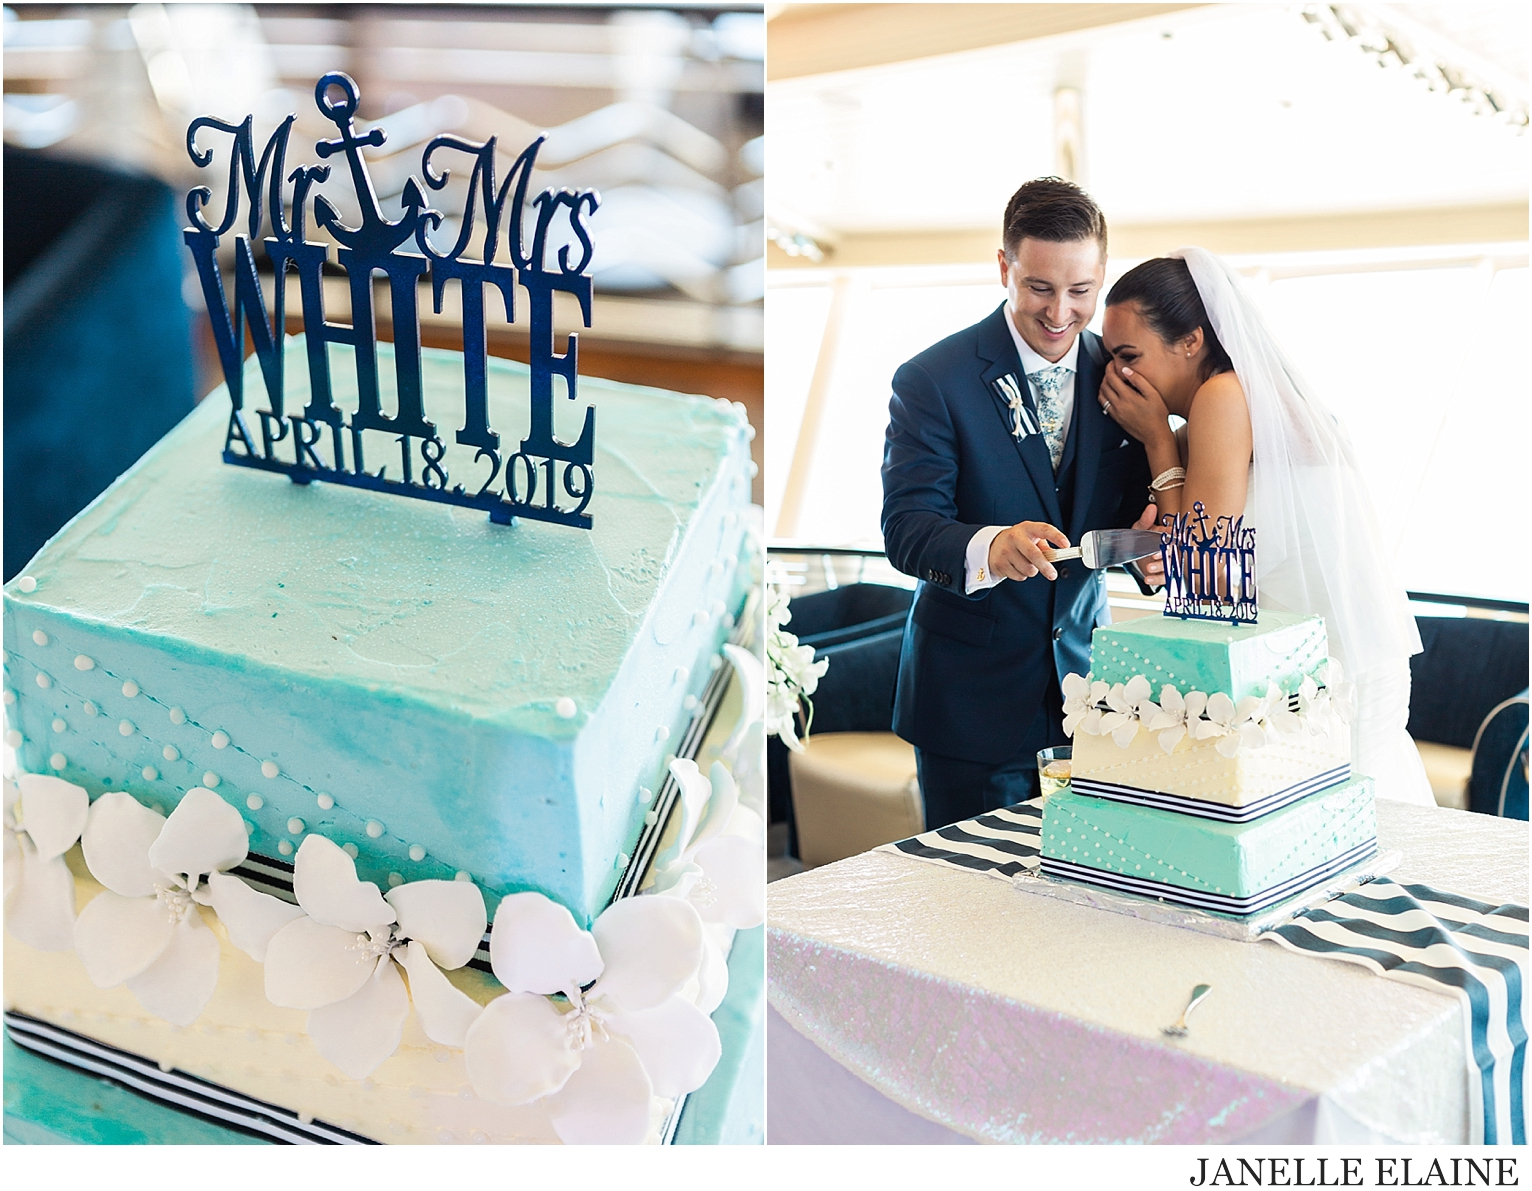 white wedding-royal caribbean-janelle elaine photography-331.jpg